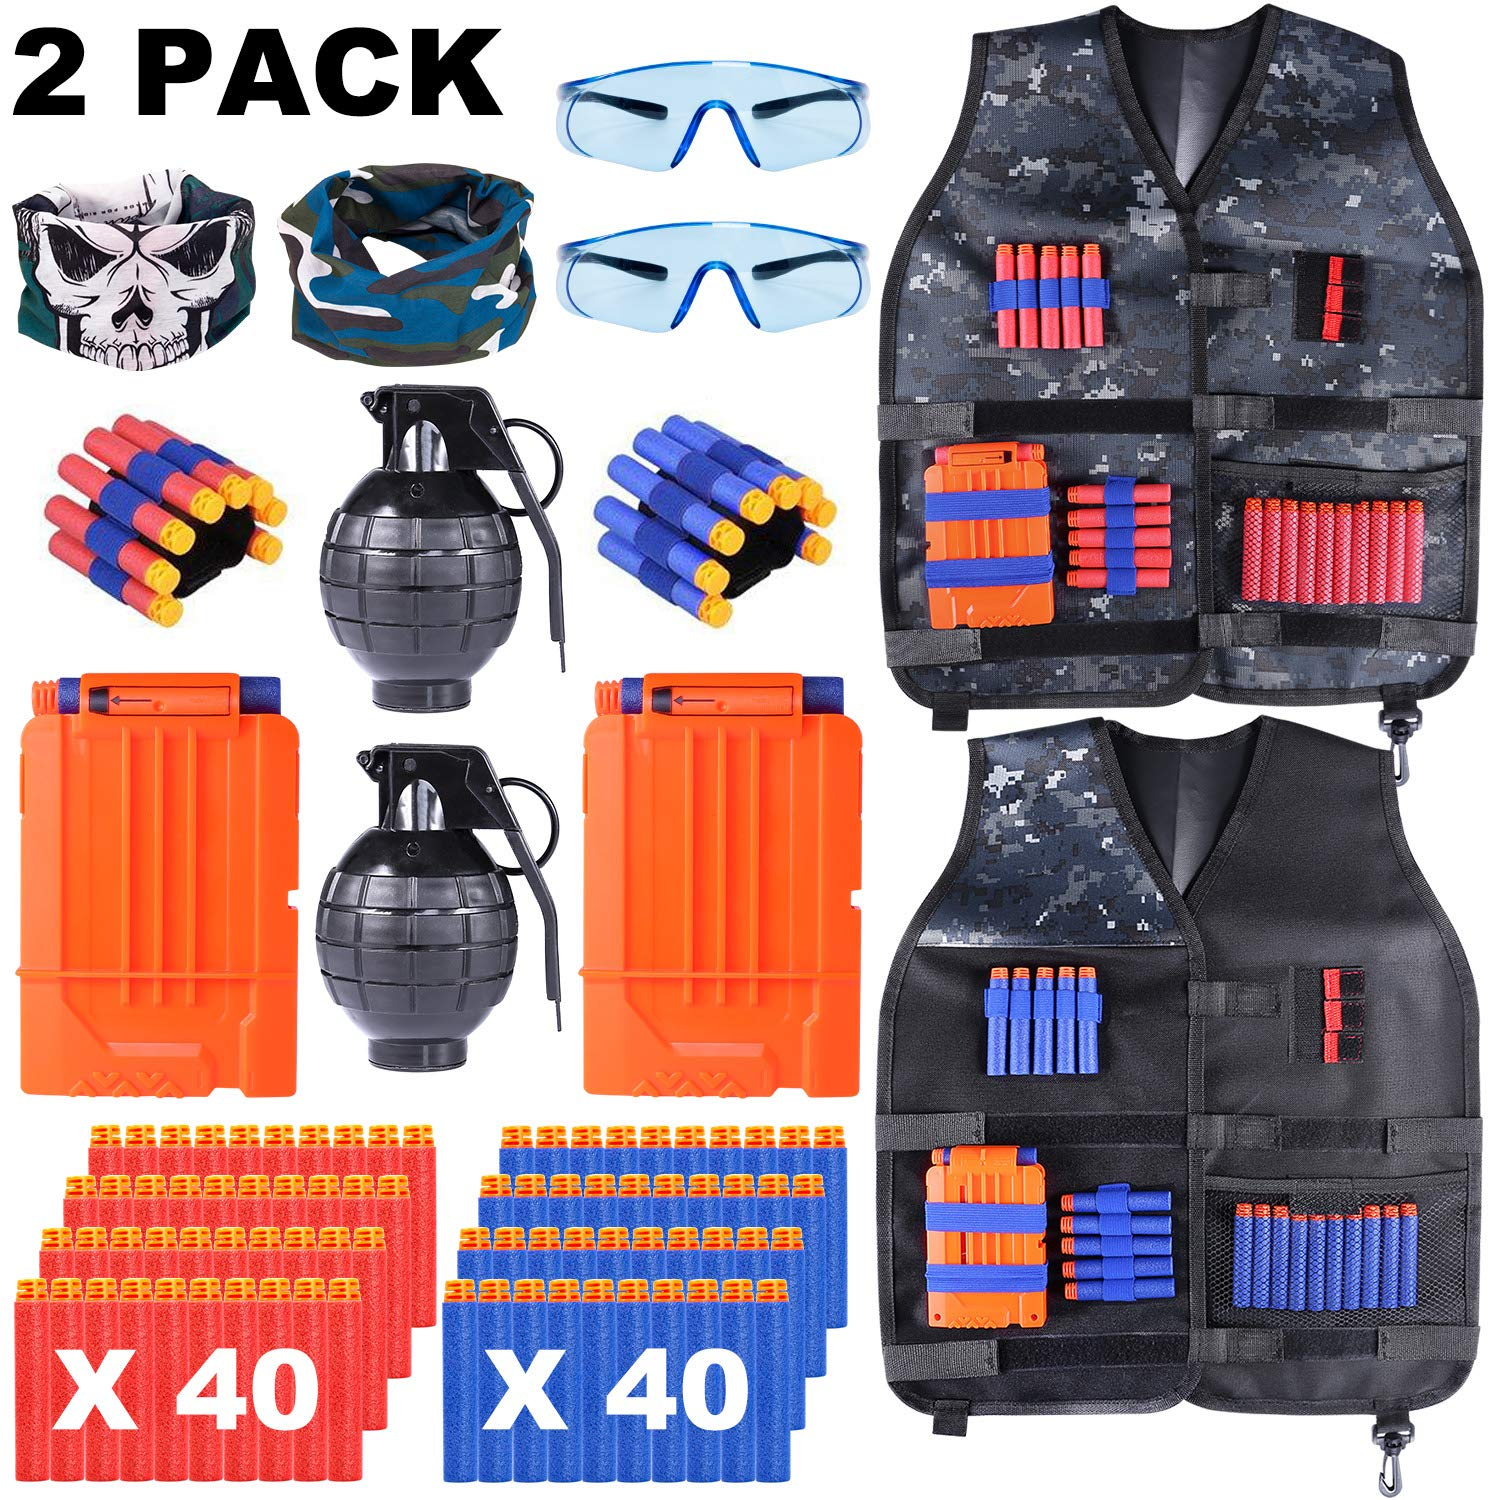 TEPSMIGO 2 Pack Kids Tactical Vest Jacket Kit for Nerf Guns, Nerf Fortnite, N-Strike Elite Series with 80 Bullets Refill Darts and Other Accessories for Nerf for Boys and Girls